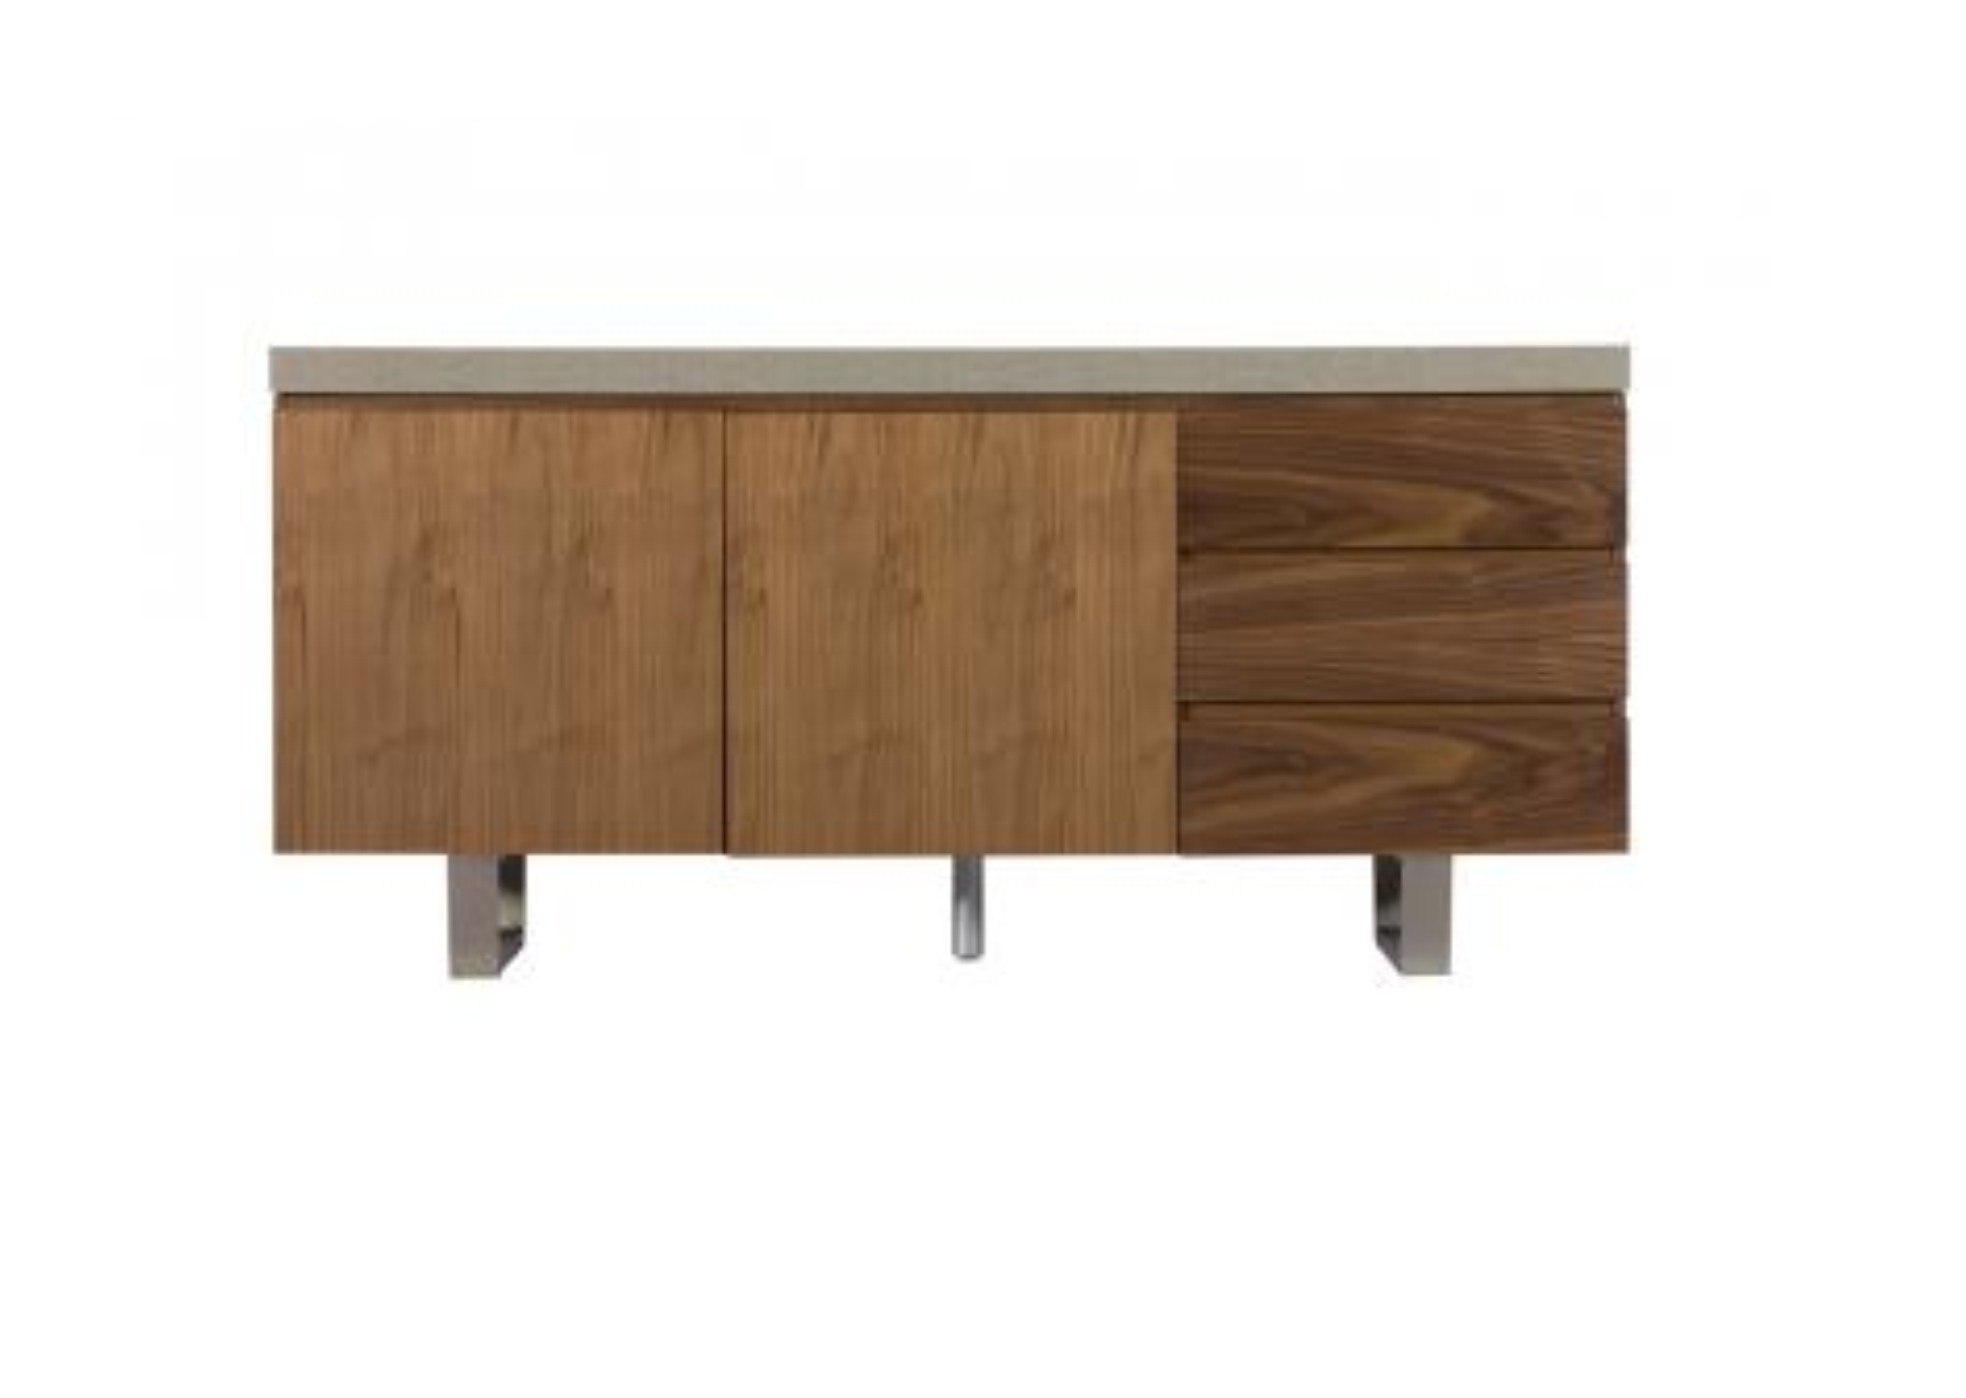 petra wide sideboard industrial style pieces mixed walnut and steel. Black Bedroom Furniture Sets. Home Design Ideas